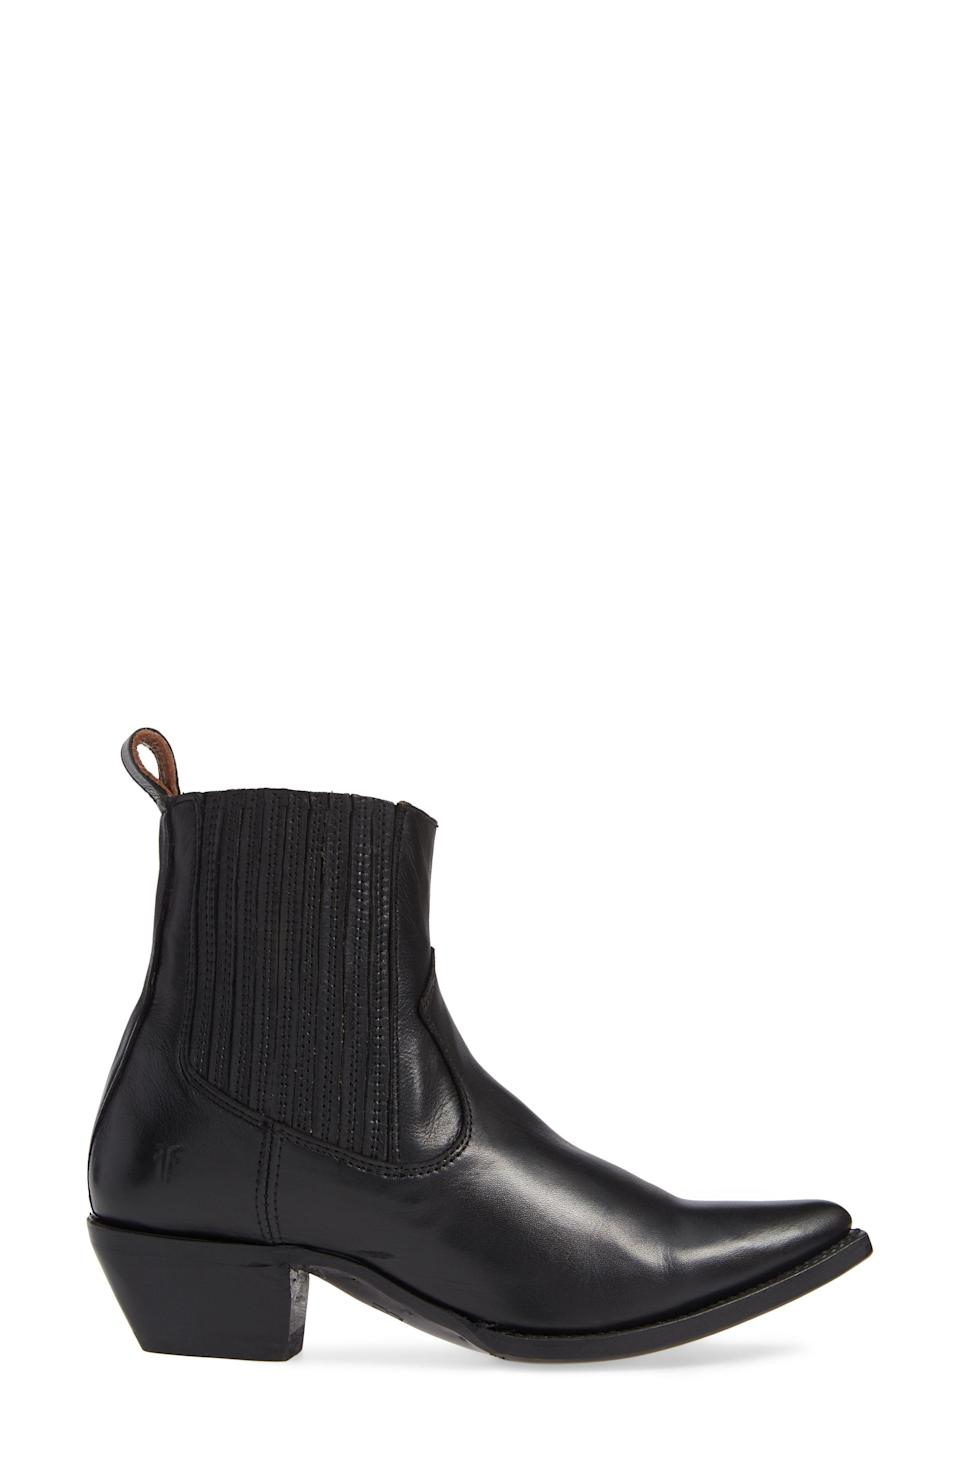 """<p><strong>FRYE</strong></p><p>nordstrom.com</p><p><a href=""""https://go.redirectingat.com?id=74968X1596630&url=https%3A%2F%2Fwww.nordstrom.com%2Fs%2Ffrye-sacha-western-bootie-women%2F6412451&sref=https%3A%2F%2Fwww.harpersbazaar.com%2Ffashion%2Ftrends%2Fg36946278%2Fnordstrom-anniversary-sale-fashion%2F"""" rel=""""nofollow noopener"""" target=""""_blank"""" data-ylk=""""slk:Shop Now"""" class=""""link rapid-noclick-resp"""">Shop Now</a></p><p><strong>Sale: $200</strong></p><p><strong>After Sale: $298</strong></p><p>Cowboy boots are another timeless must. </p>"""